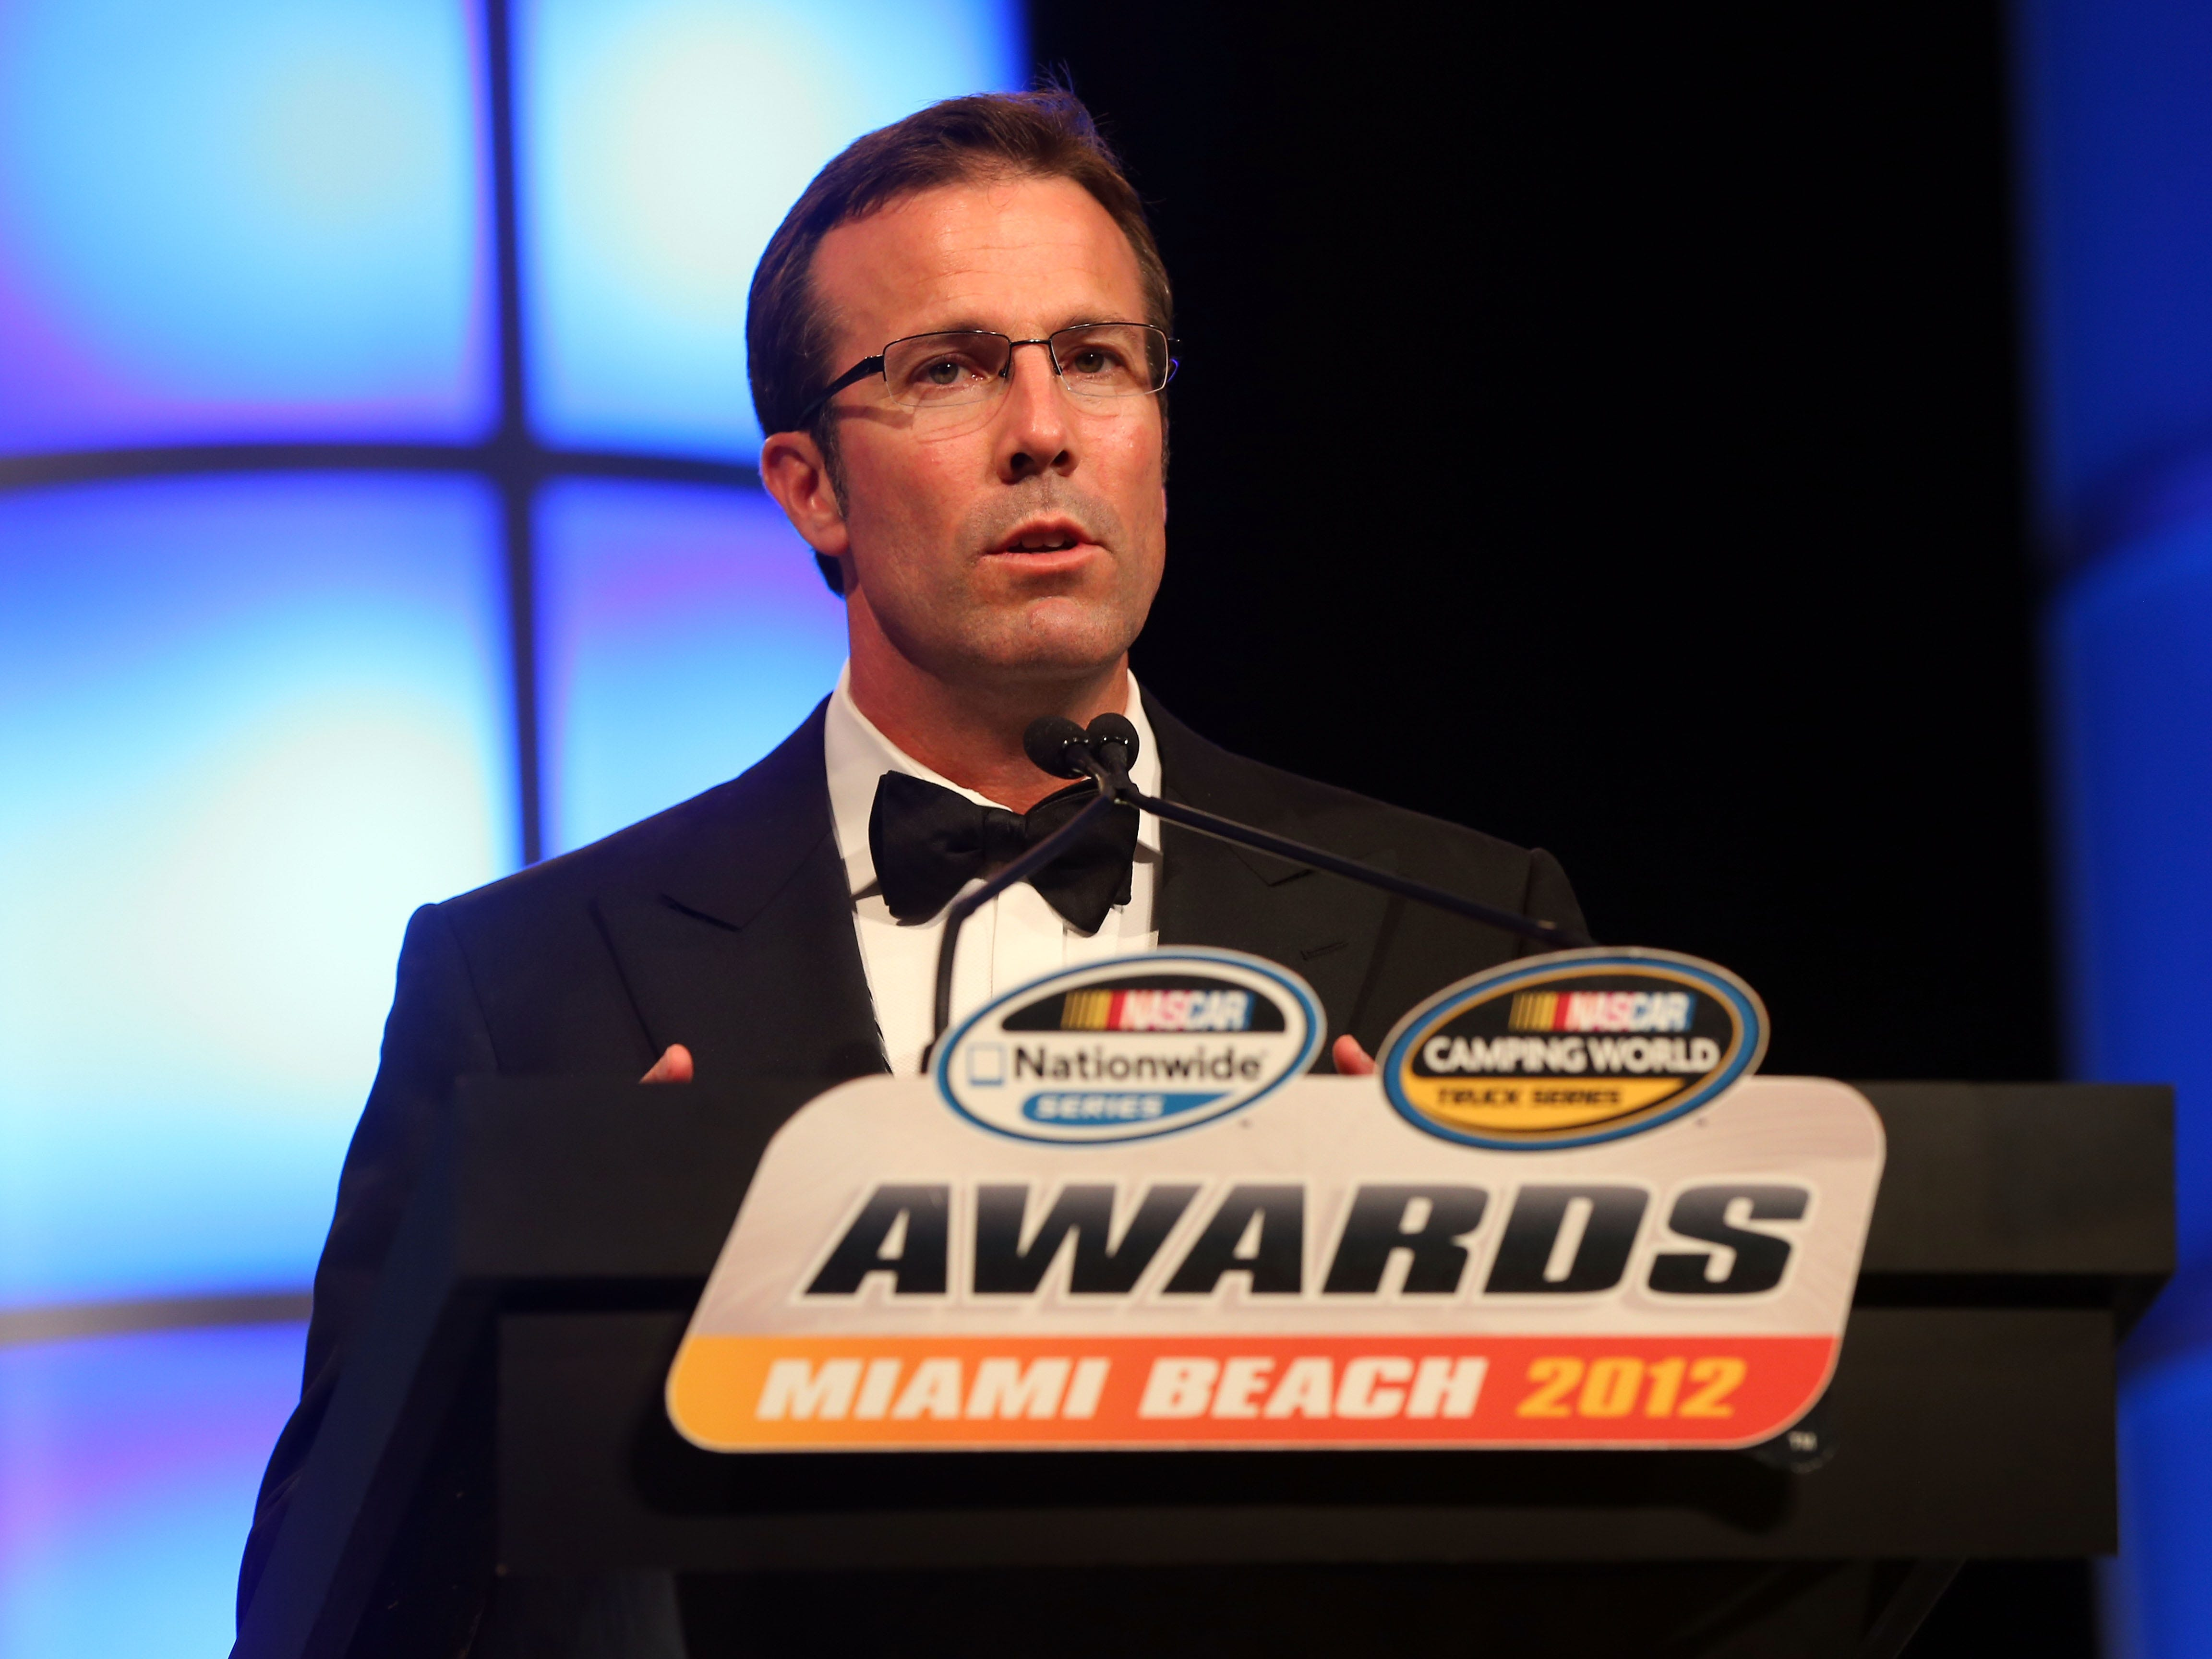 J.D. Gibbs, race-car driver and co-owner of Joe Gibbs Racing, of degenerative neurological disease. Jan. 11. He was 49.